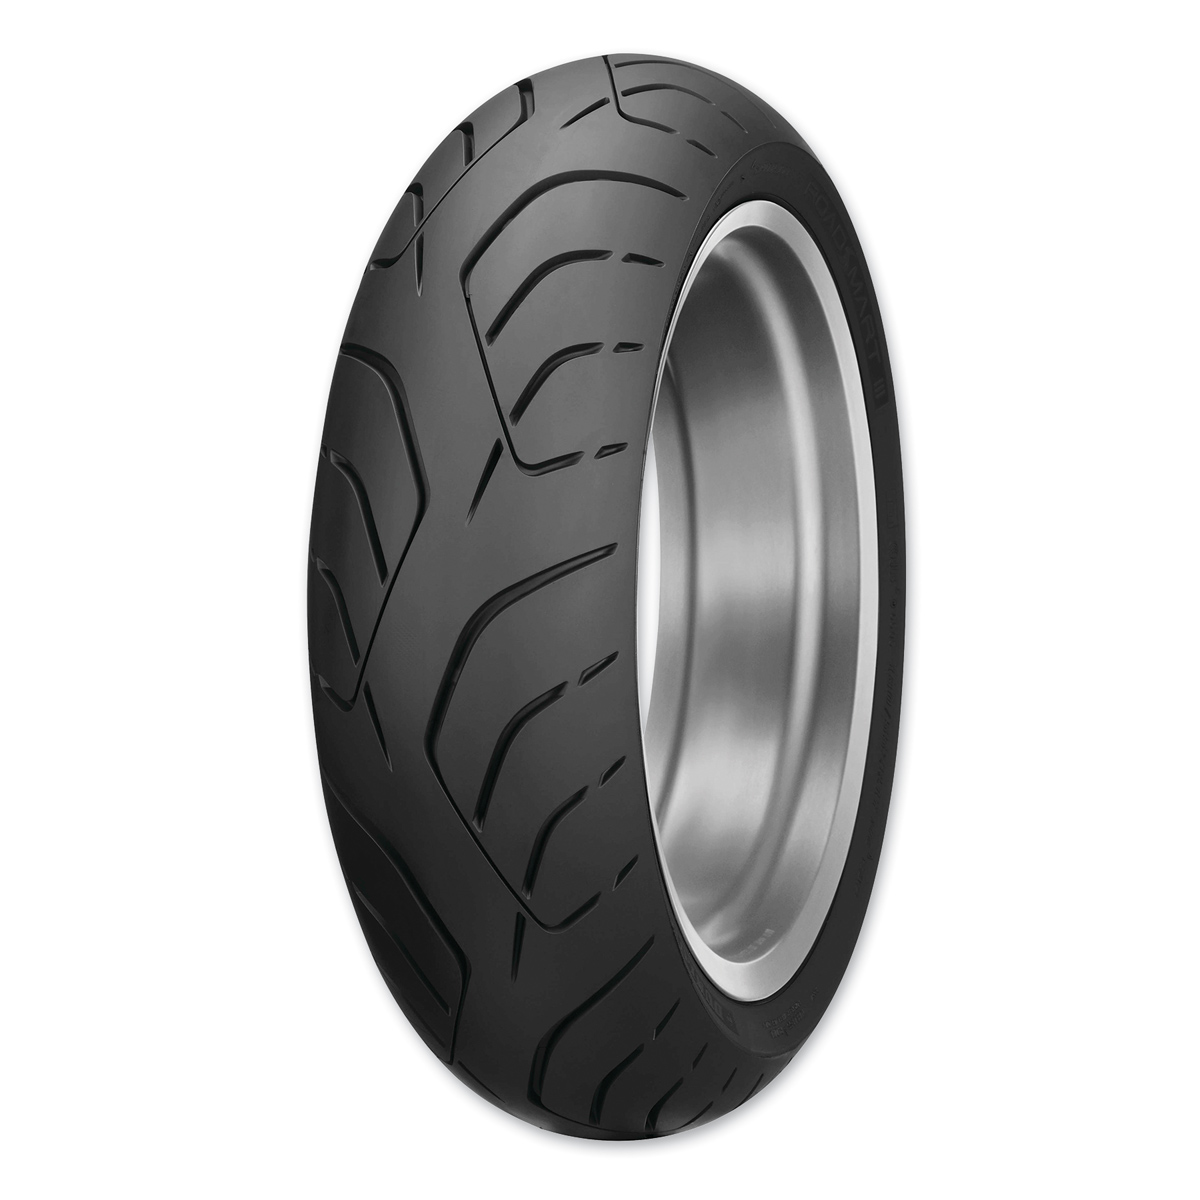 Dunlop Roadsmart III 180/55ZR17 Rear Tire